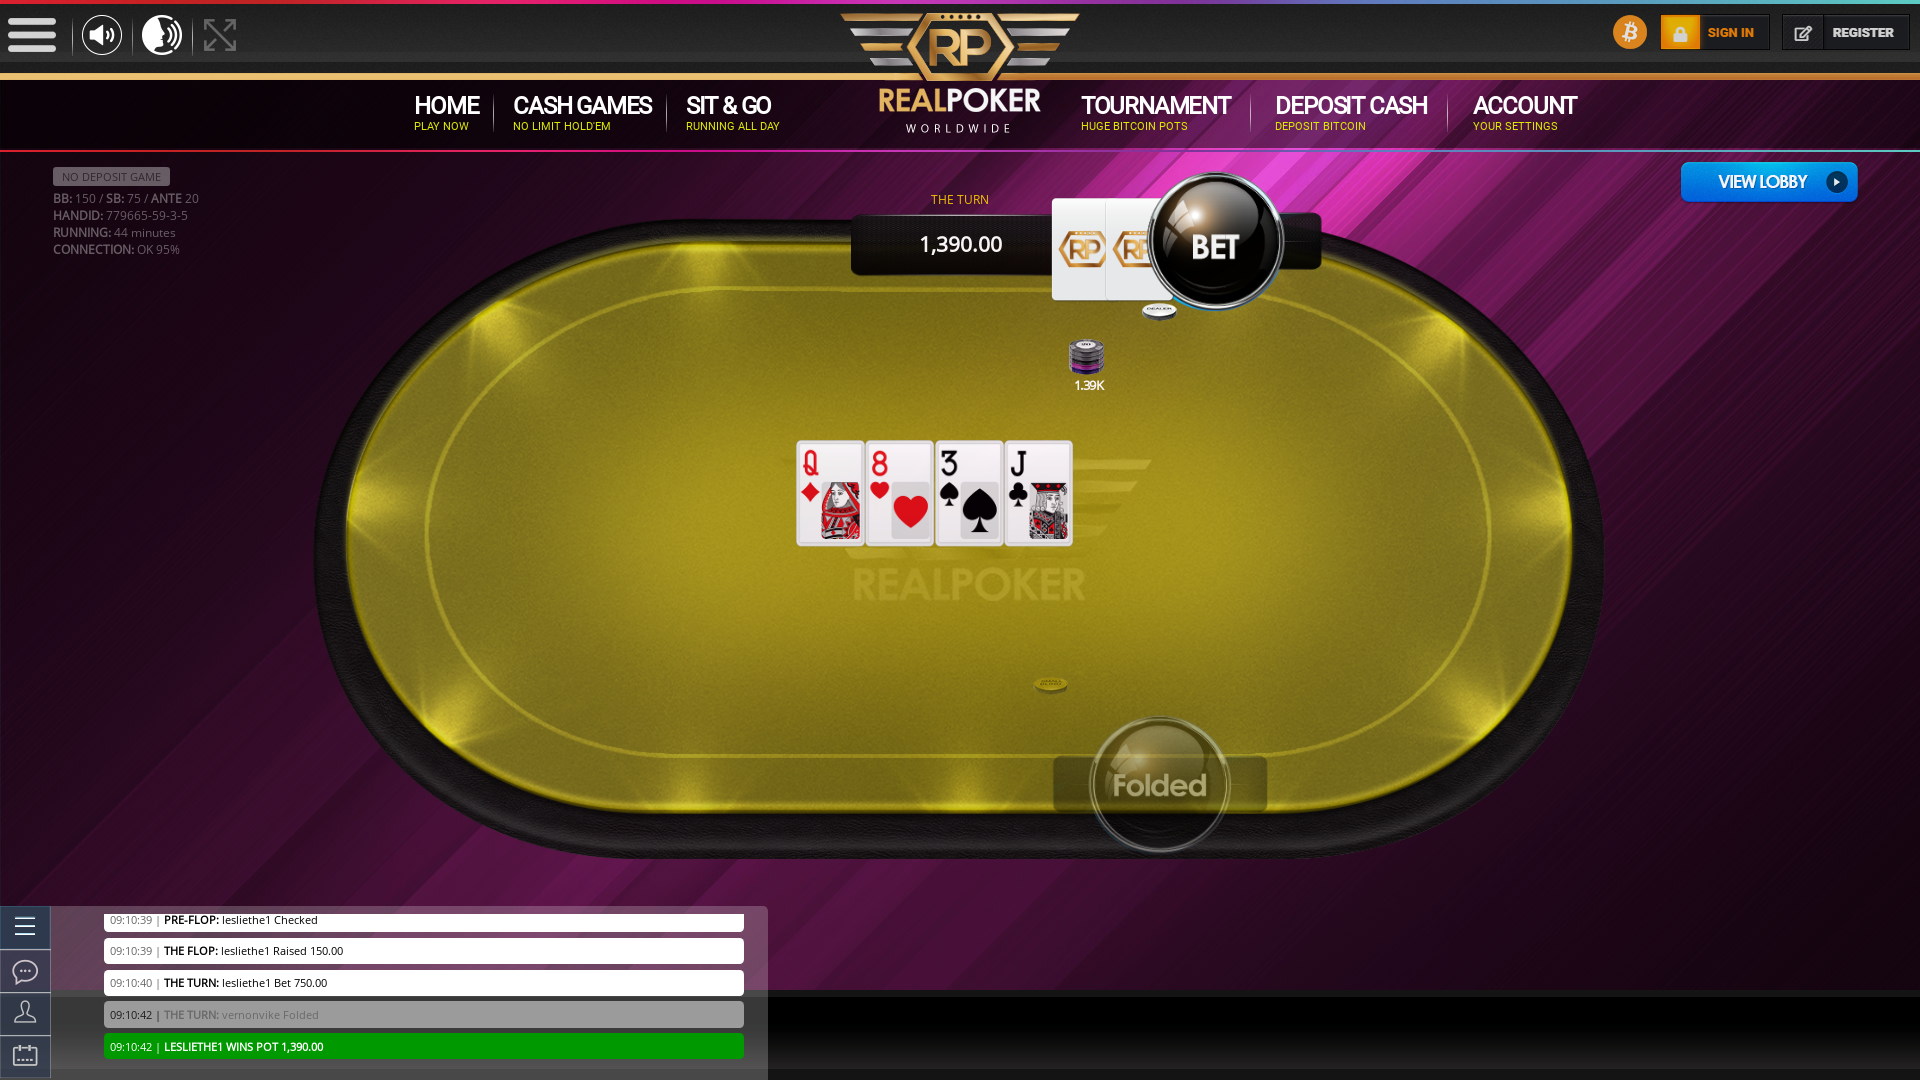 Real poker 10 player table in the 44th minute of the match